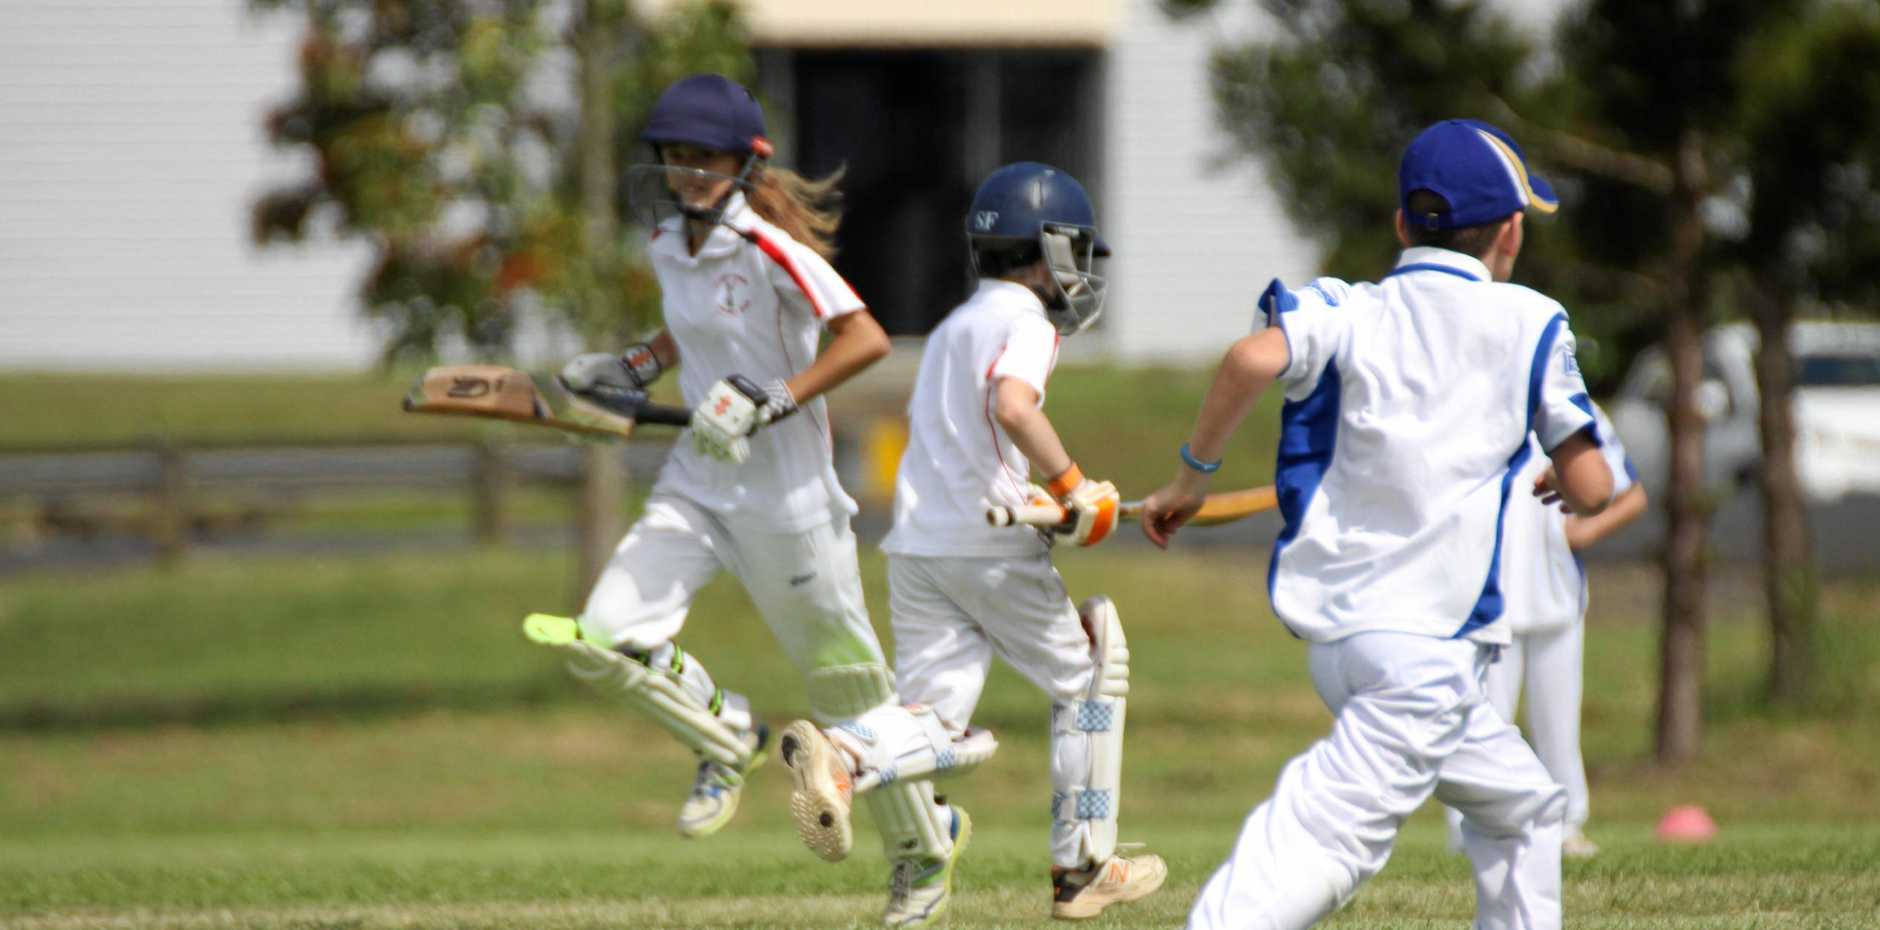 GAME ON: Junior cricketers including batters Emily Hosking, 12, and Ruben Chriss, 7, showed good skills, teamwork and sportsmanship at matches in Lismore on Saturday November 3..